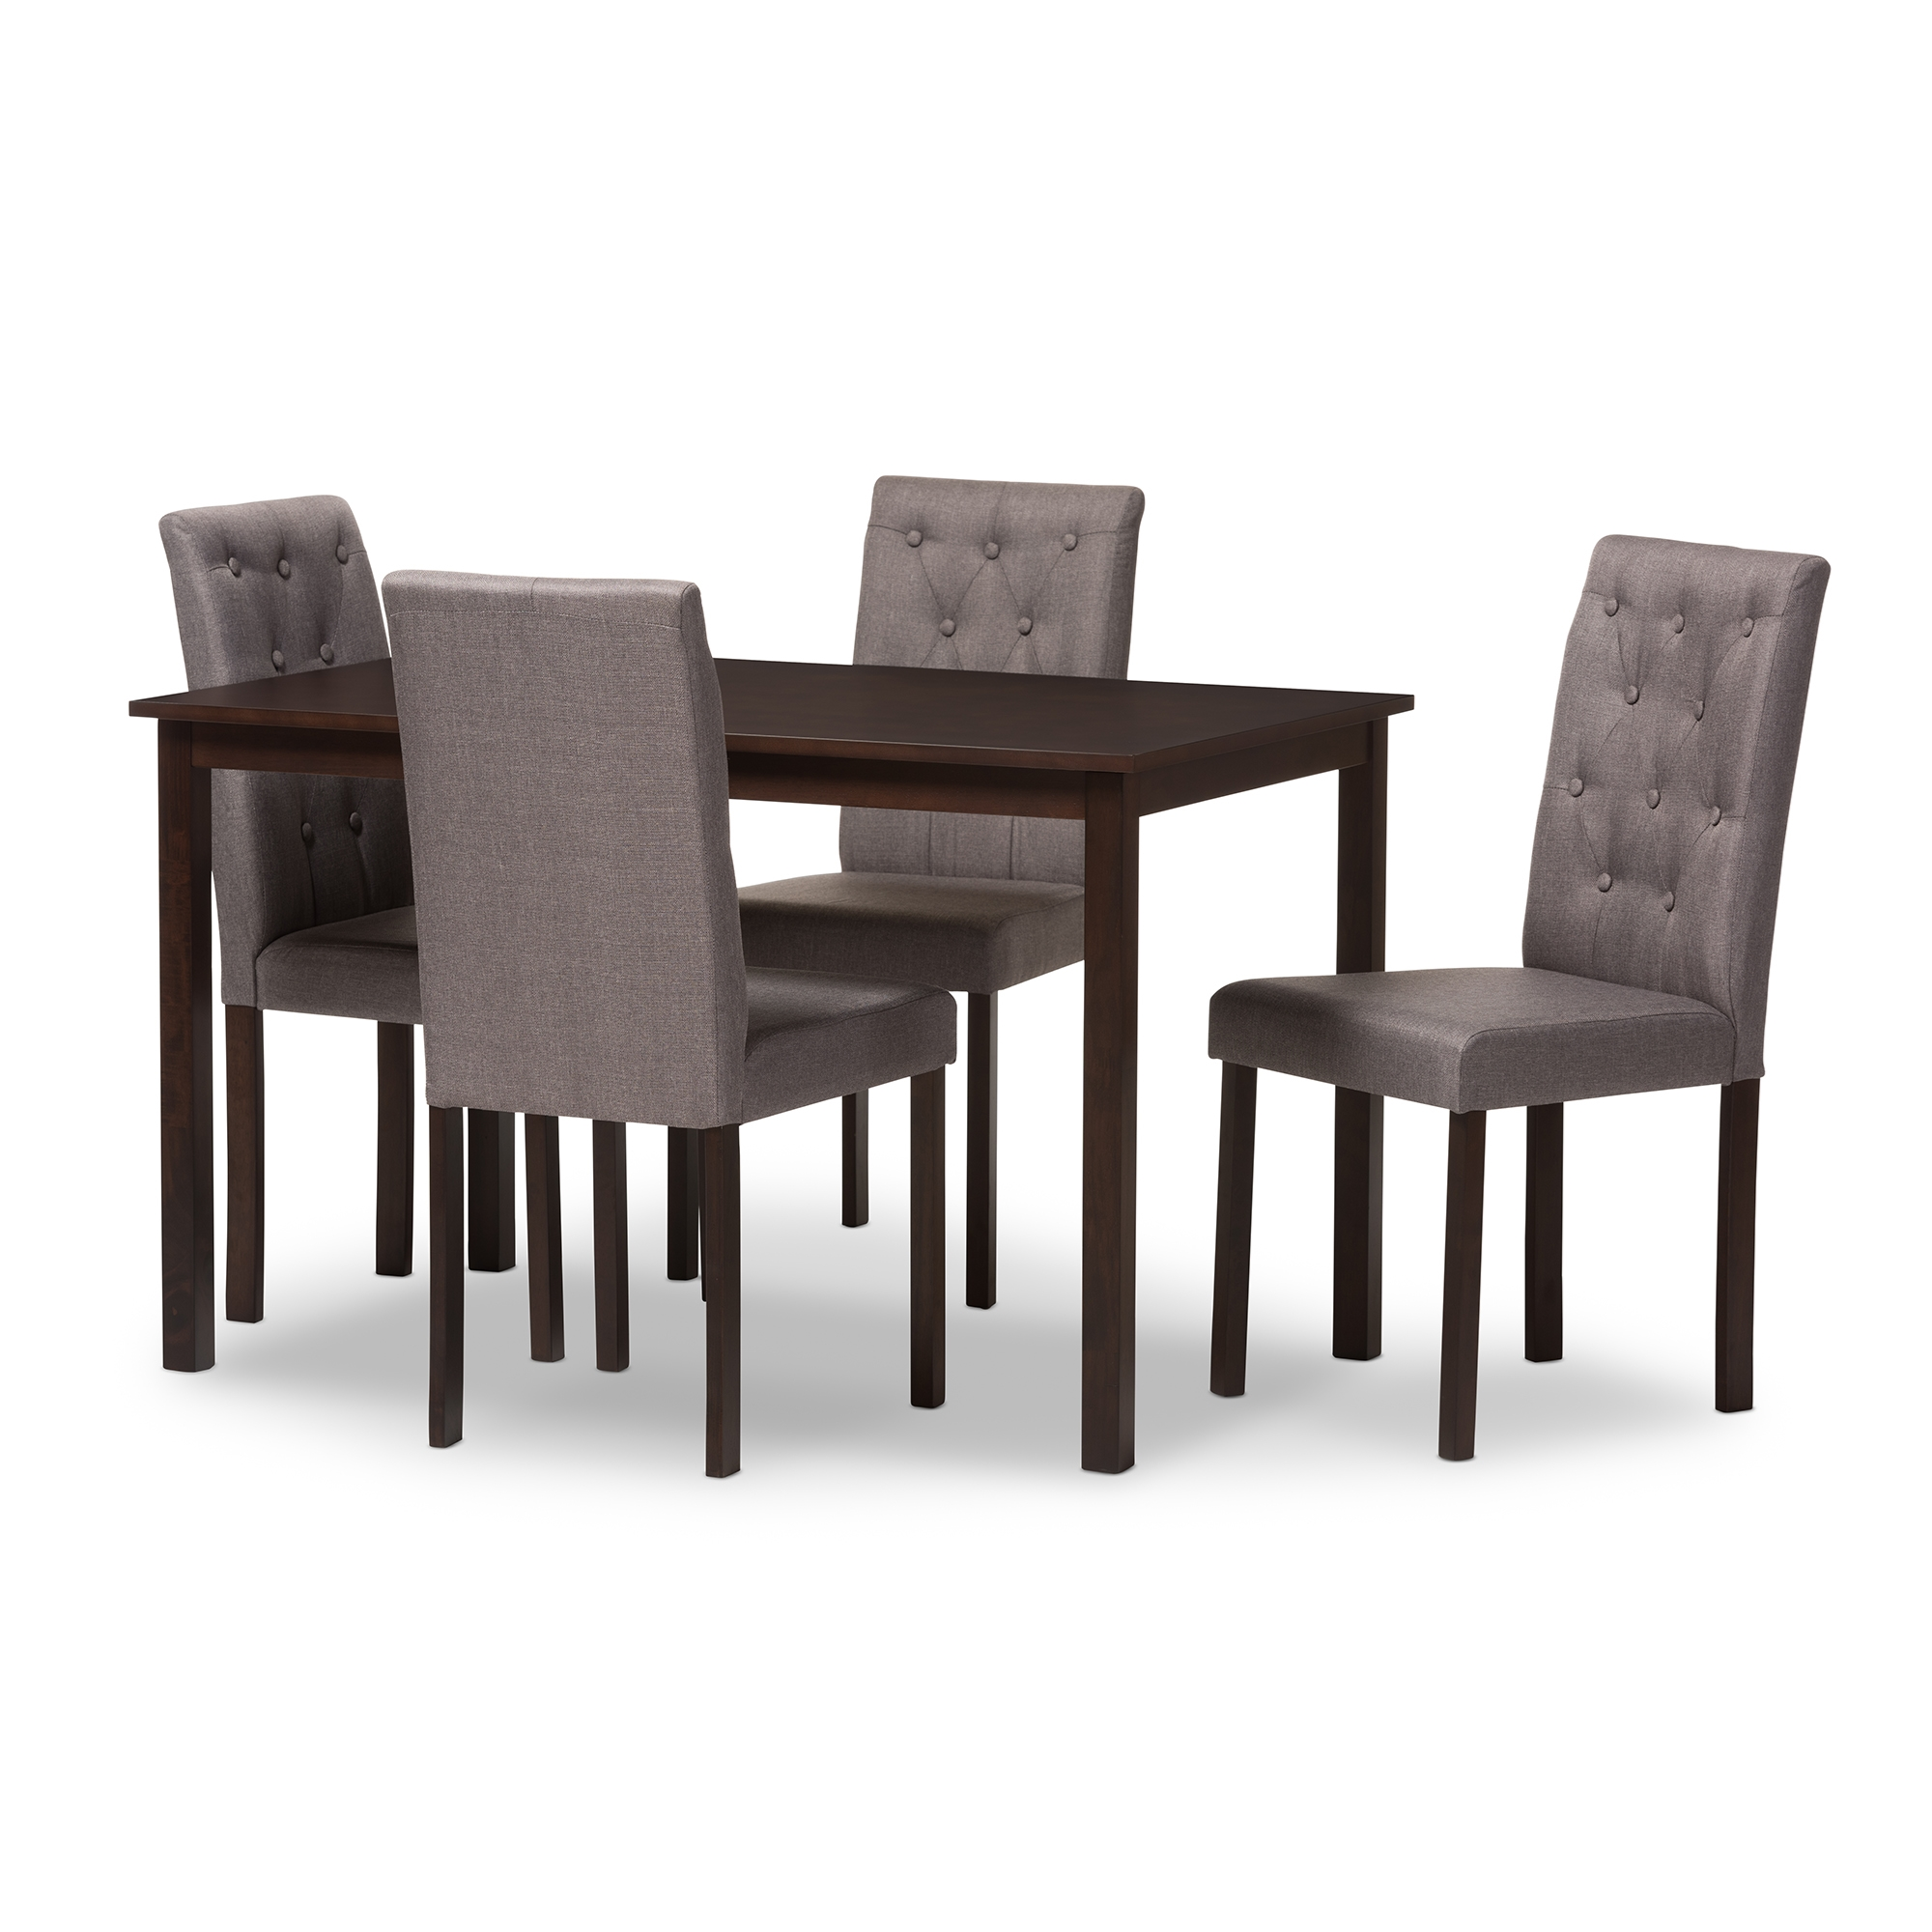 baxton studio gardner modern and 5piece dark brown finished grey fabric upholstered dining